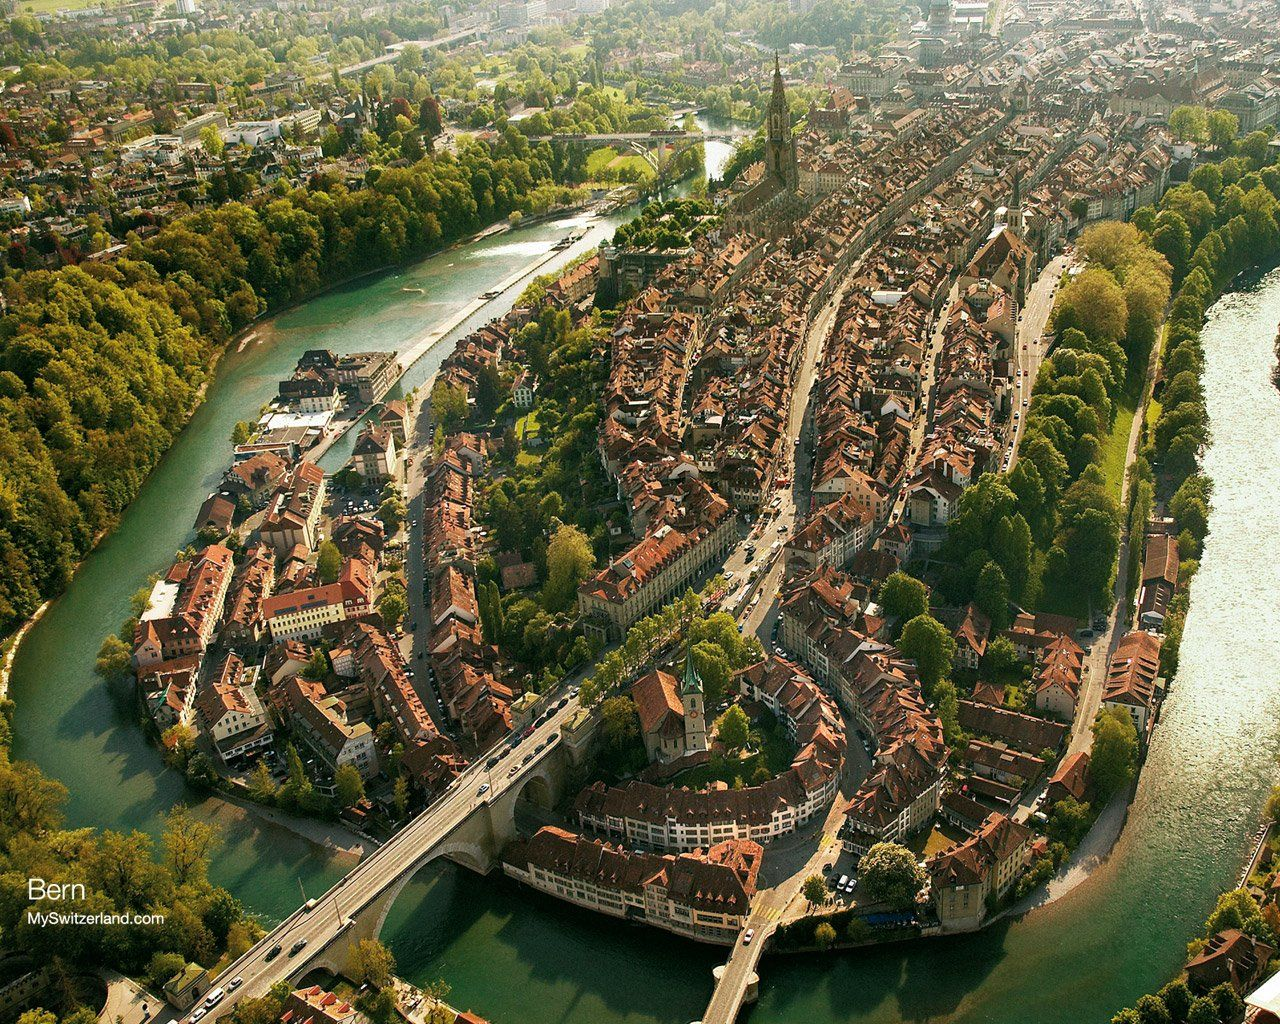 Town of Bern in Switzerland!